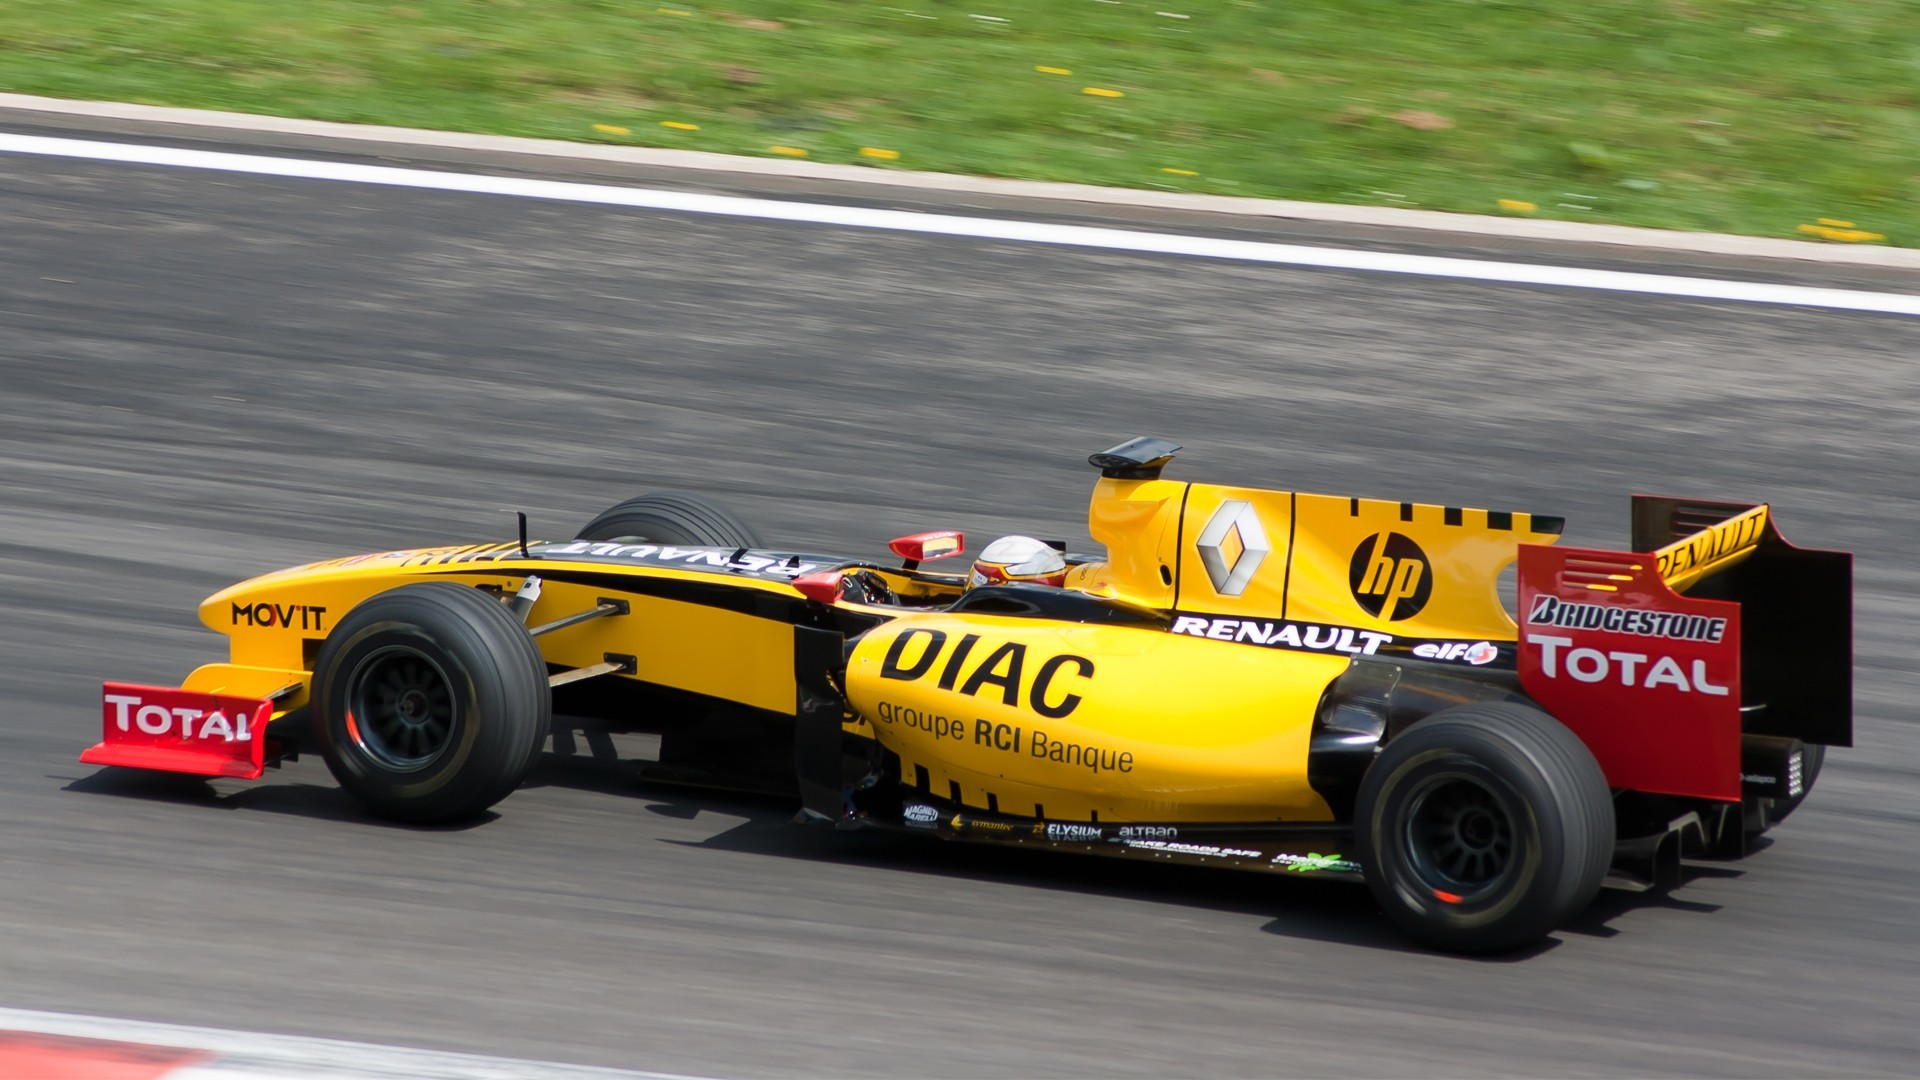 formula one Renault cars